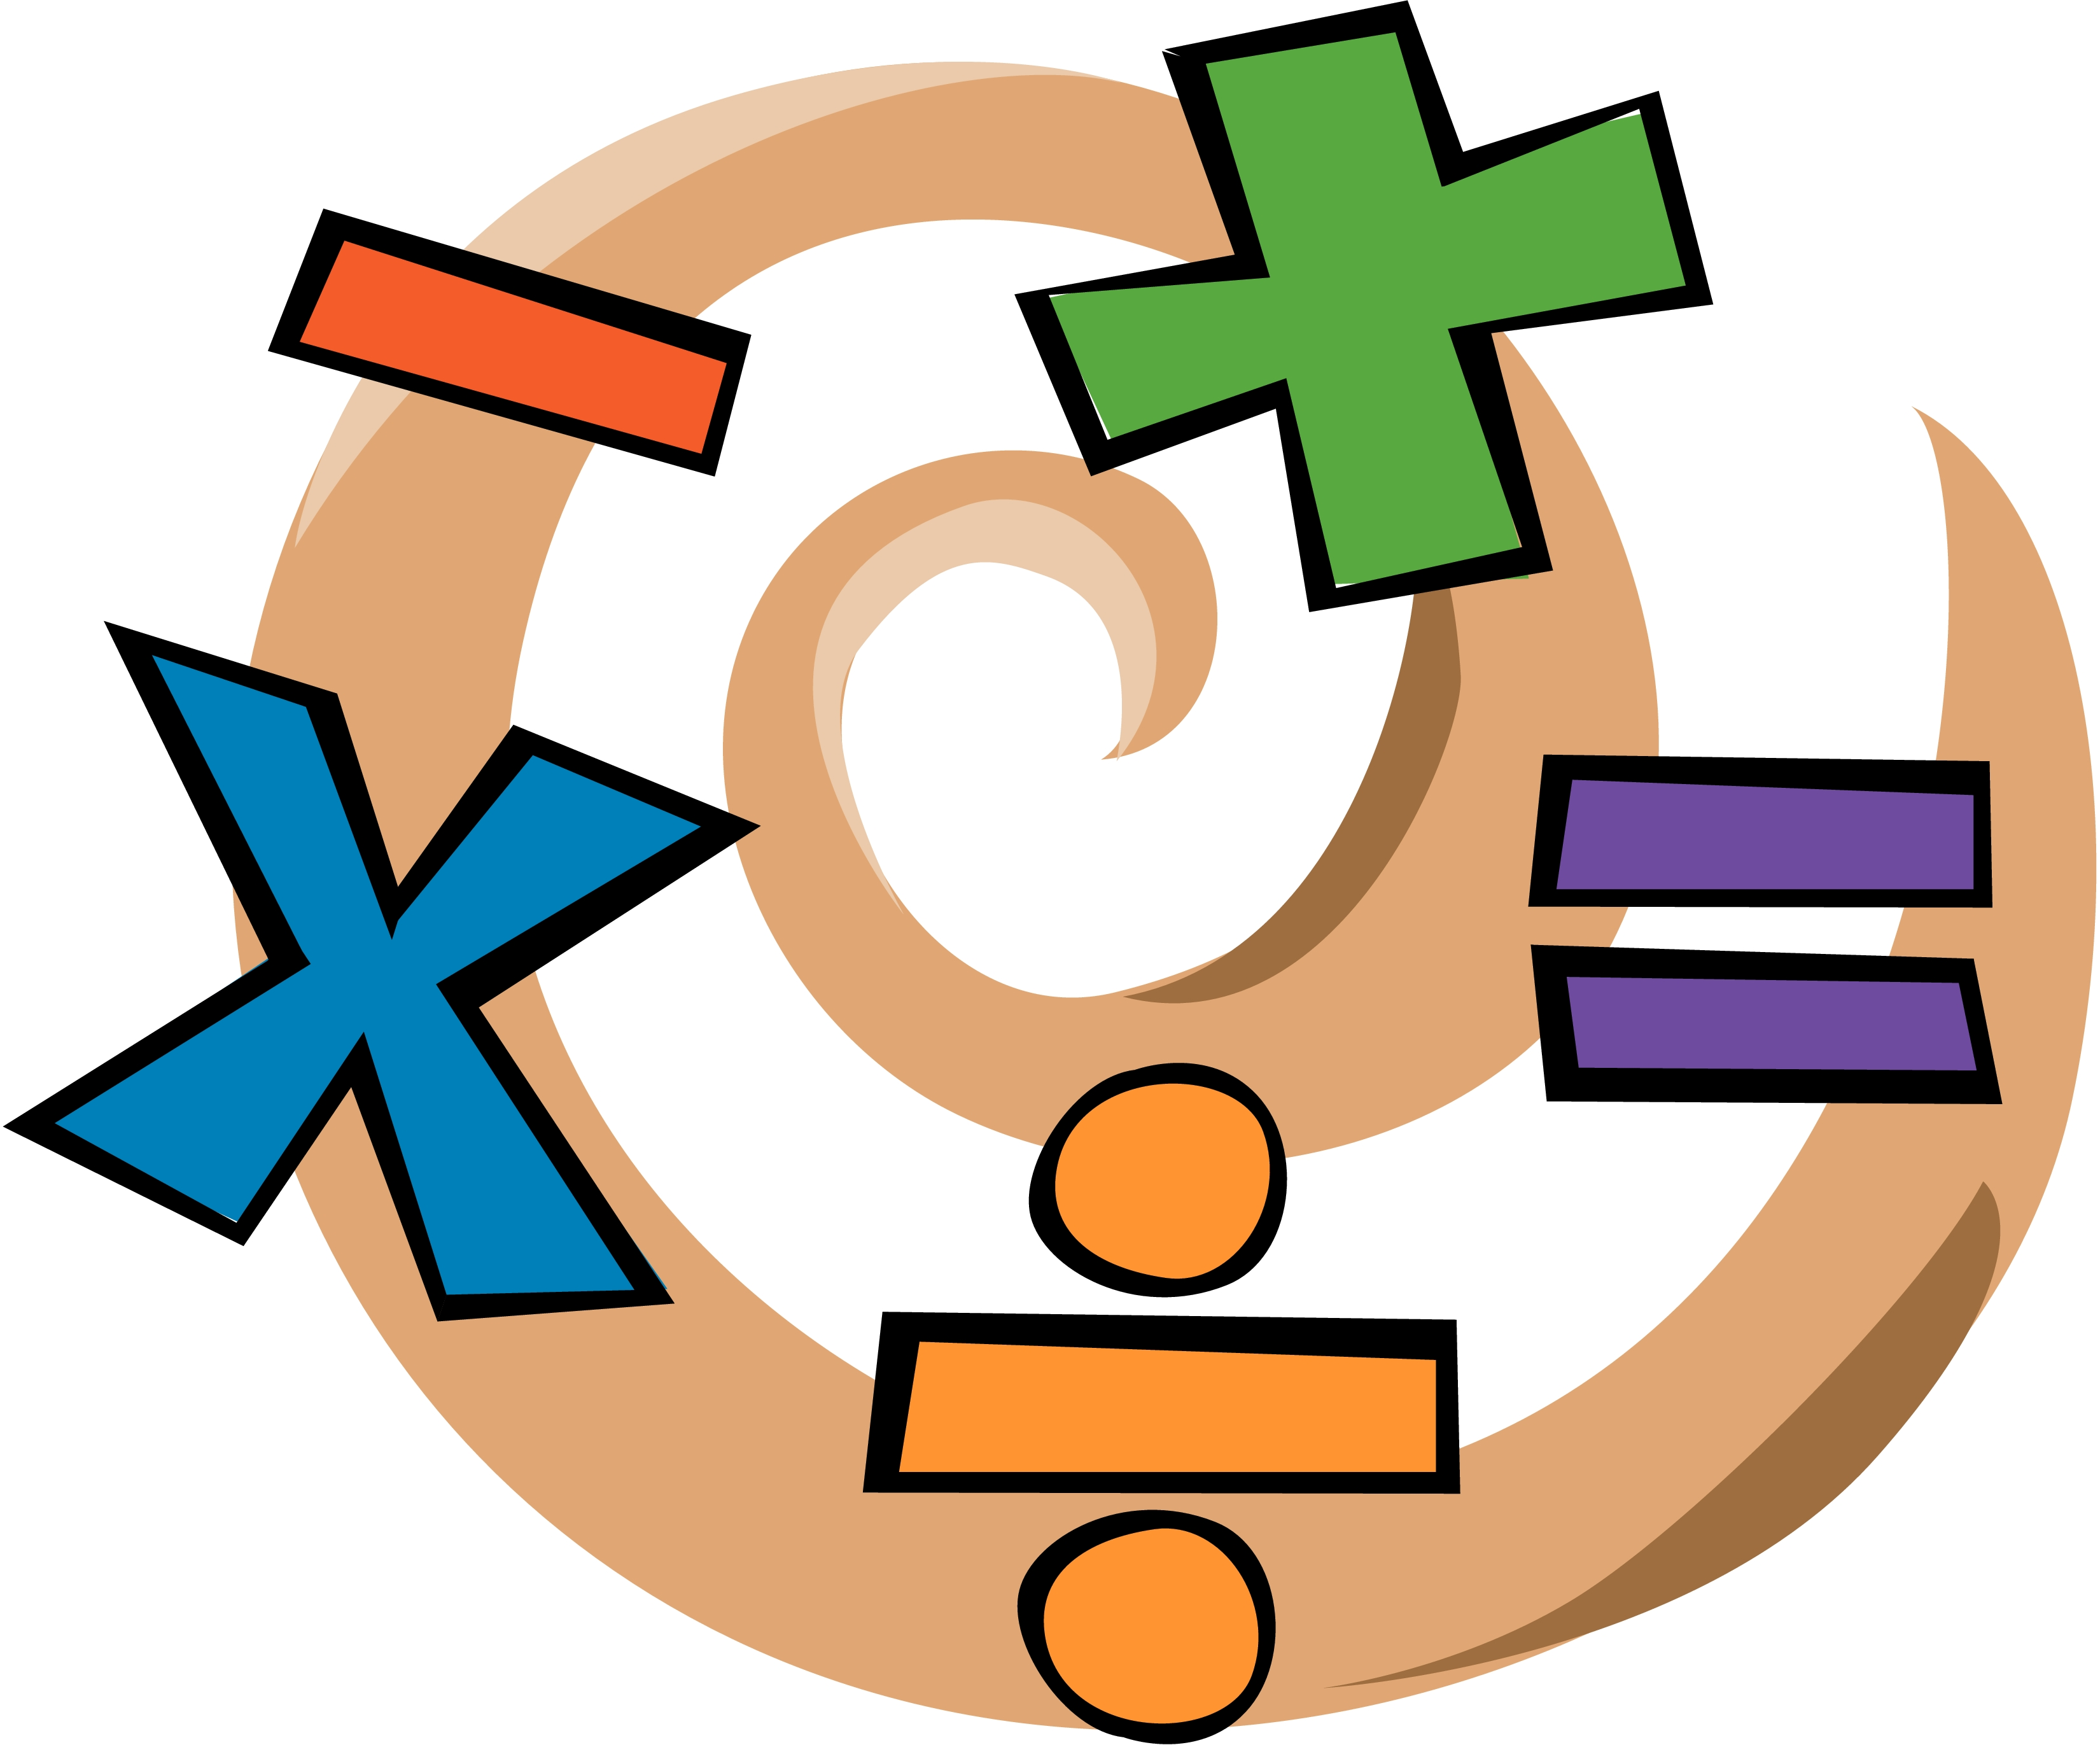 jpg transparent library Math clipart. Free images for download.